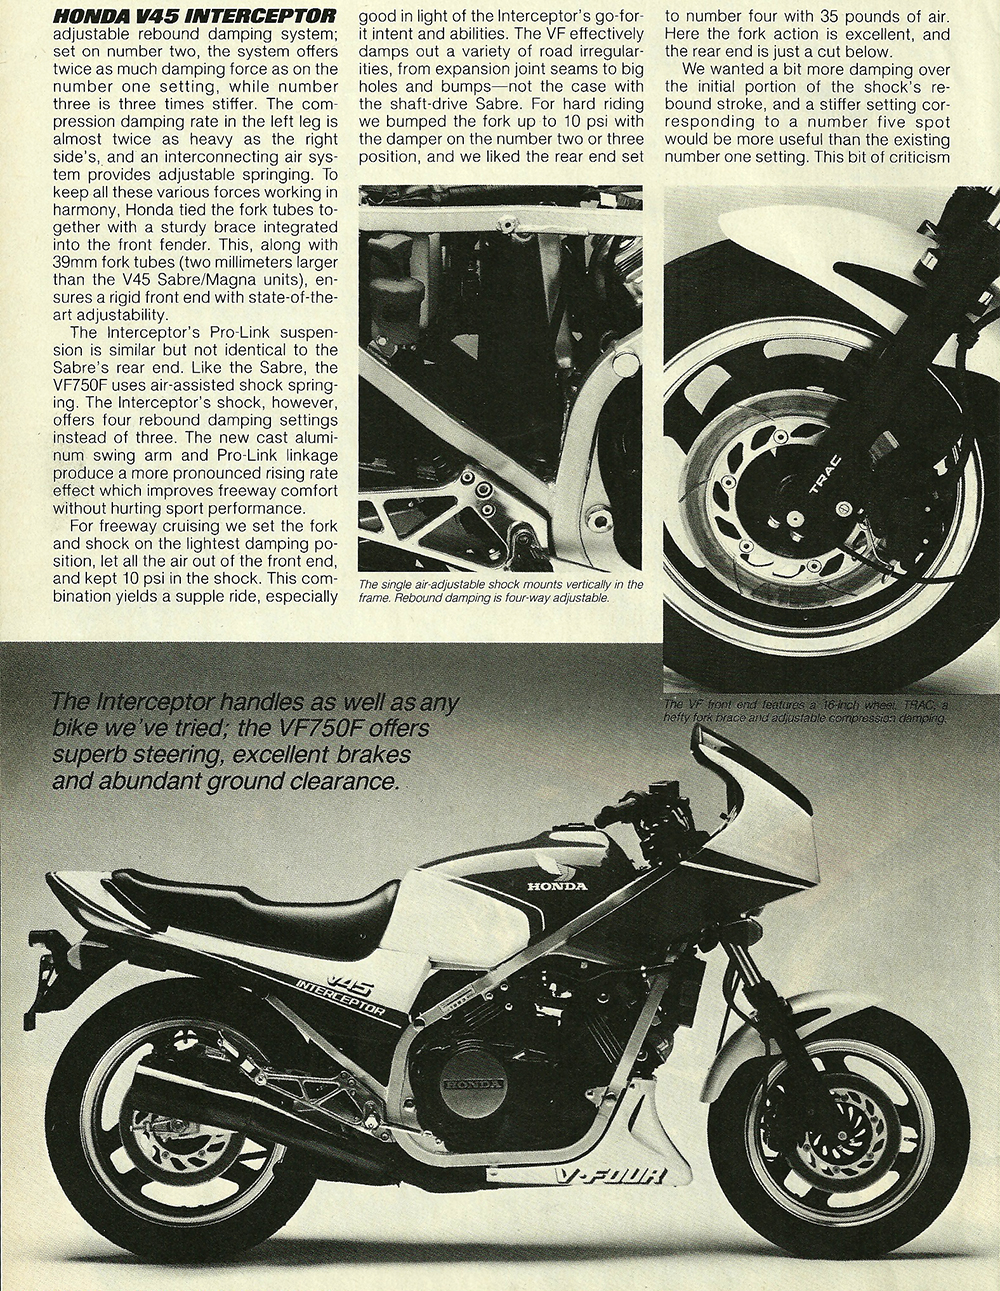 1983 Honda V45 Interceptor road test 05.jpg